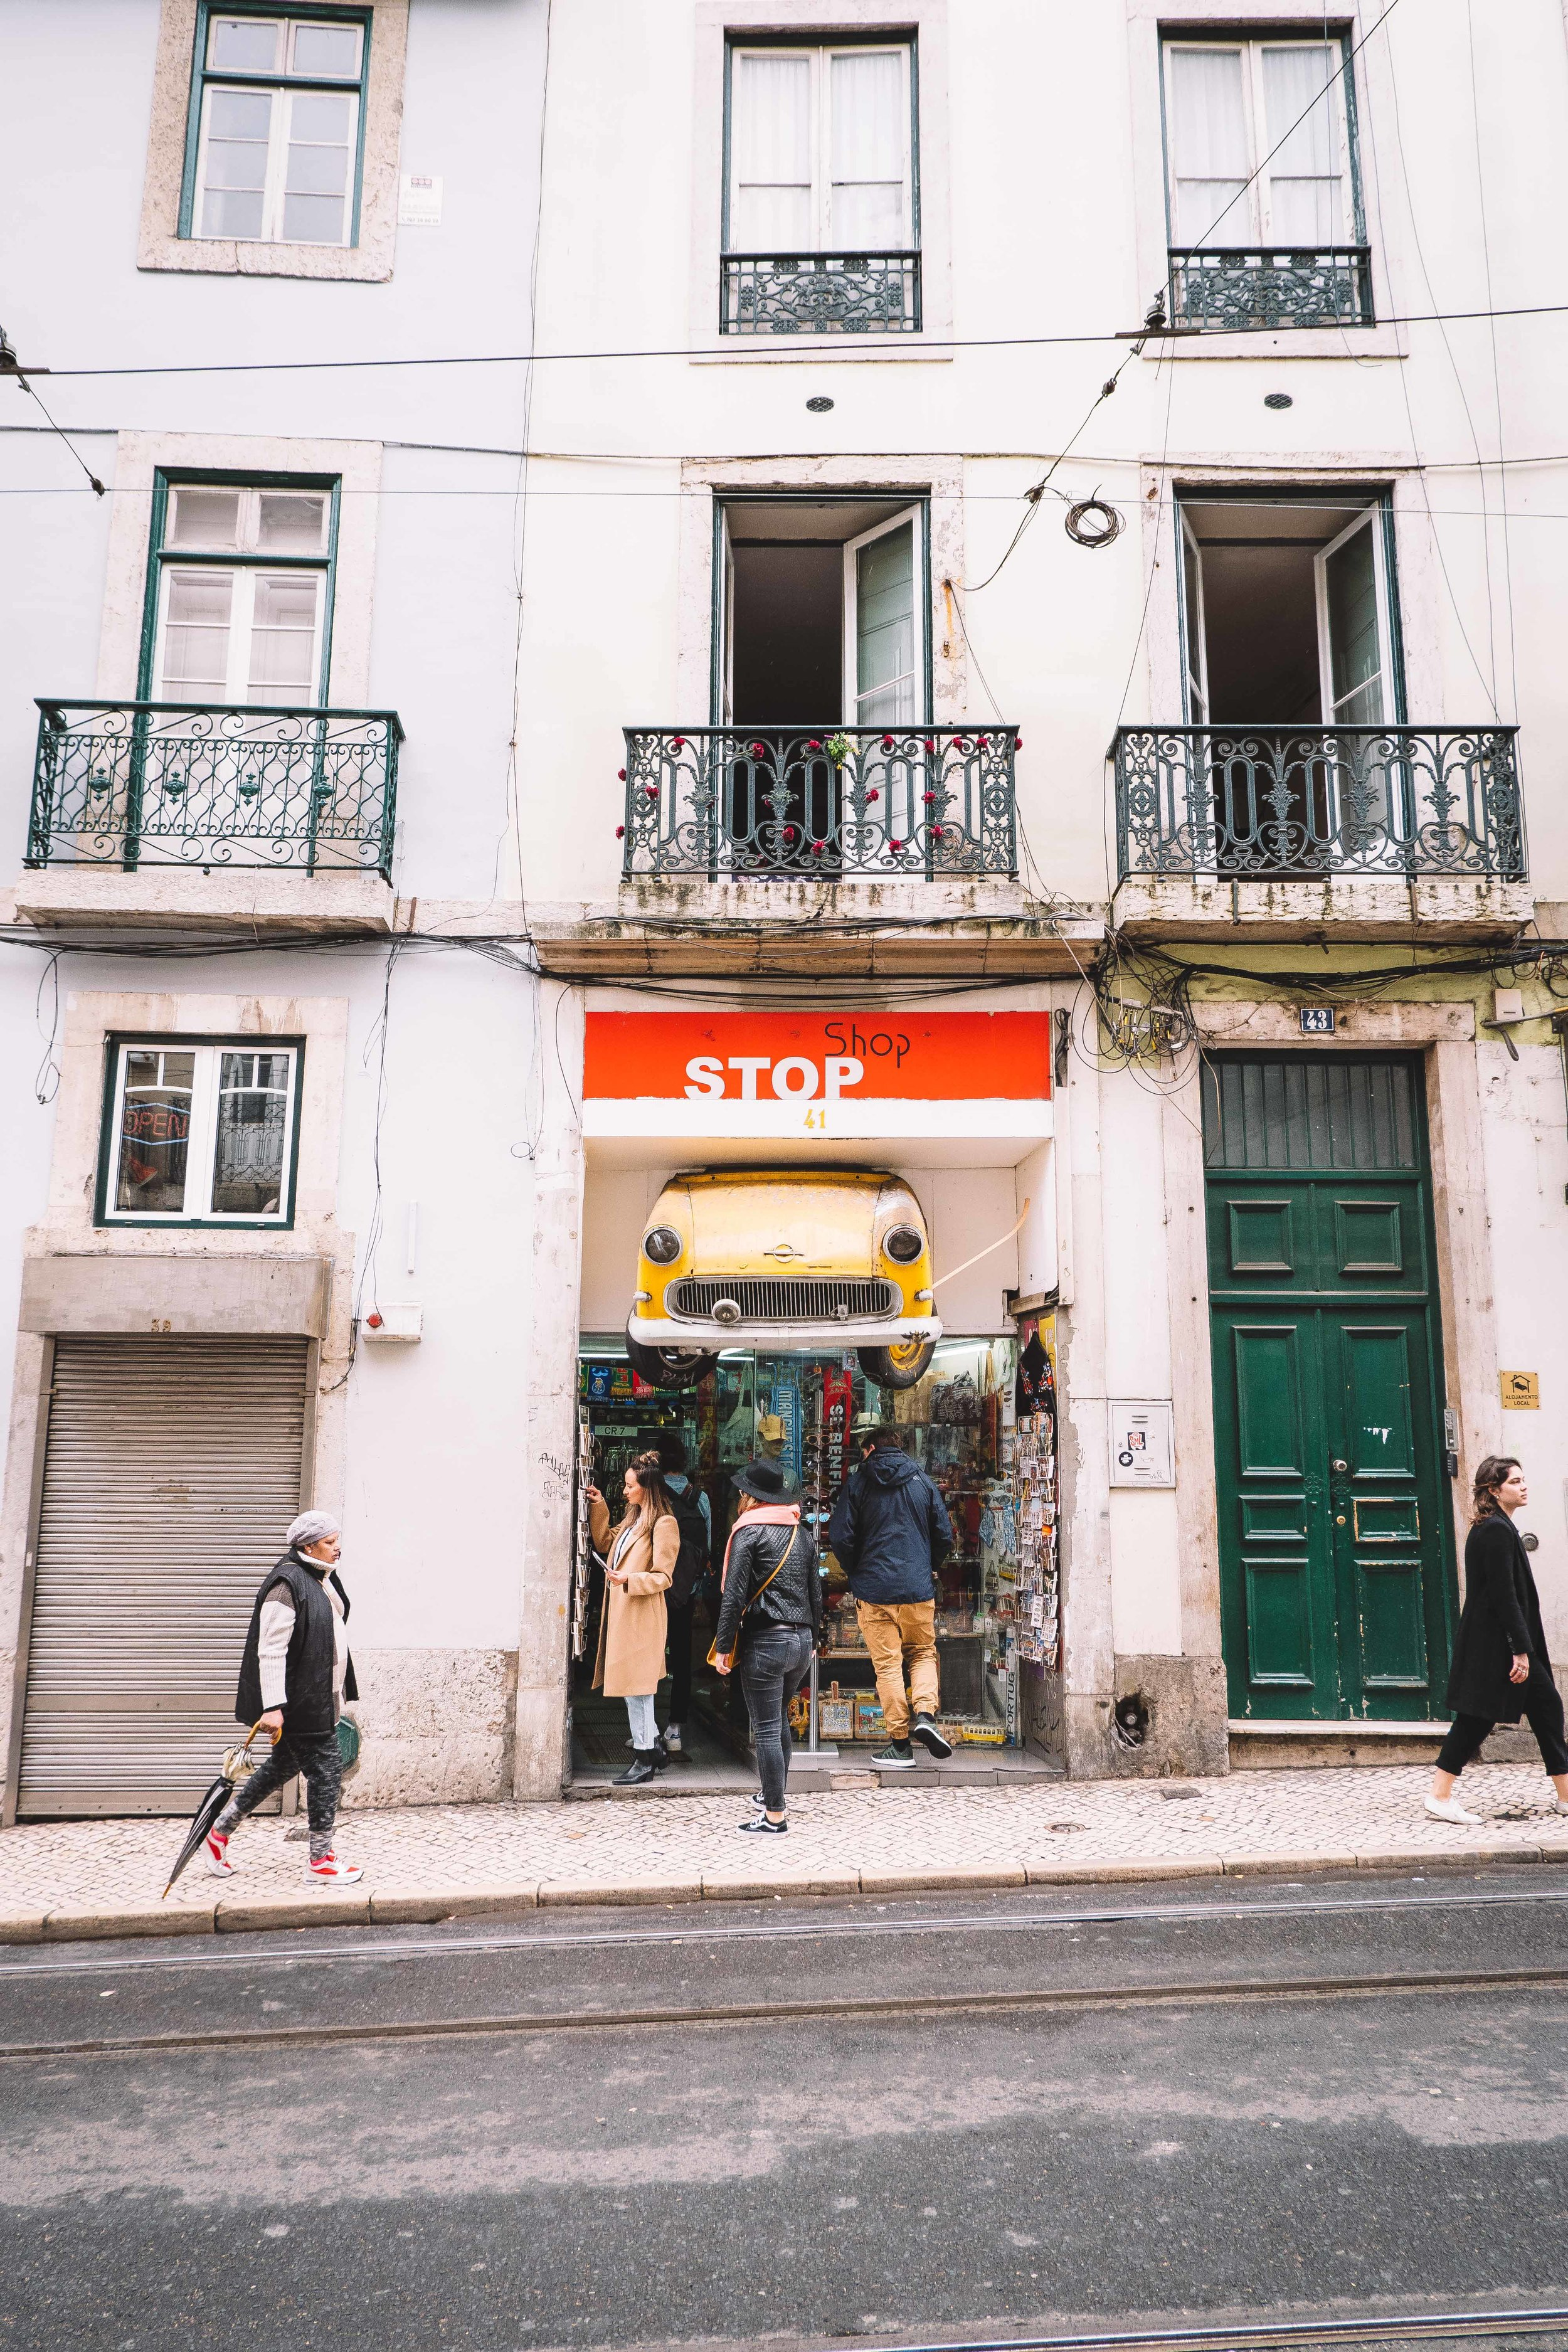 Picking out postcards at the Stop Shop in Lisbon